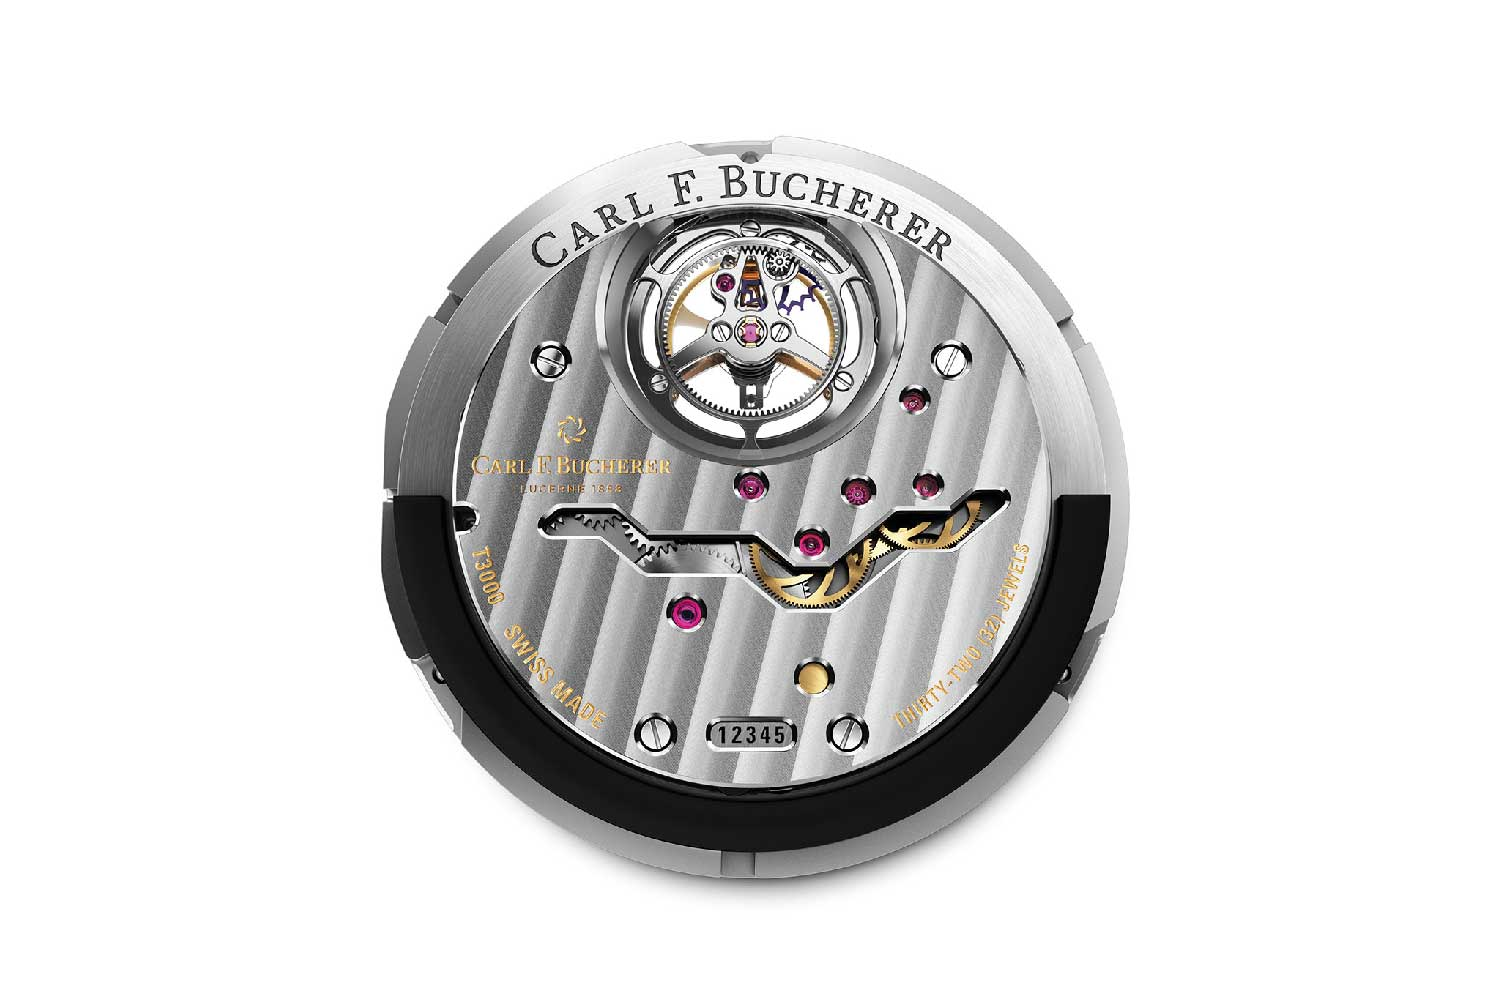 The watch is powered by the in-house CFB T3000 calibre, which boasts a floating tourbillon and an automatic winding system that are both mounted peripherally.